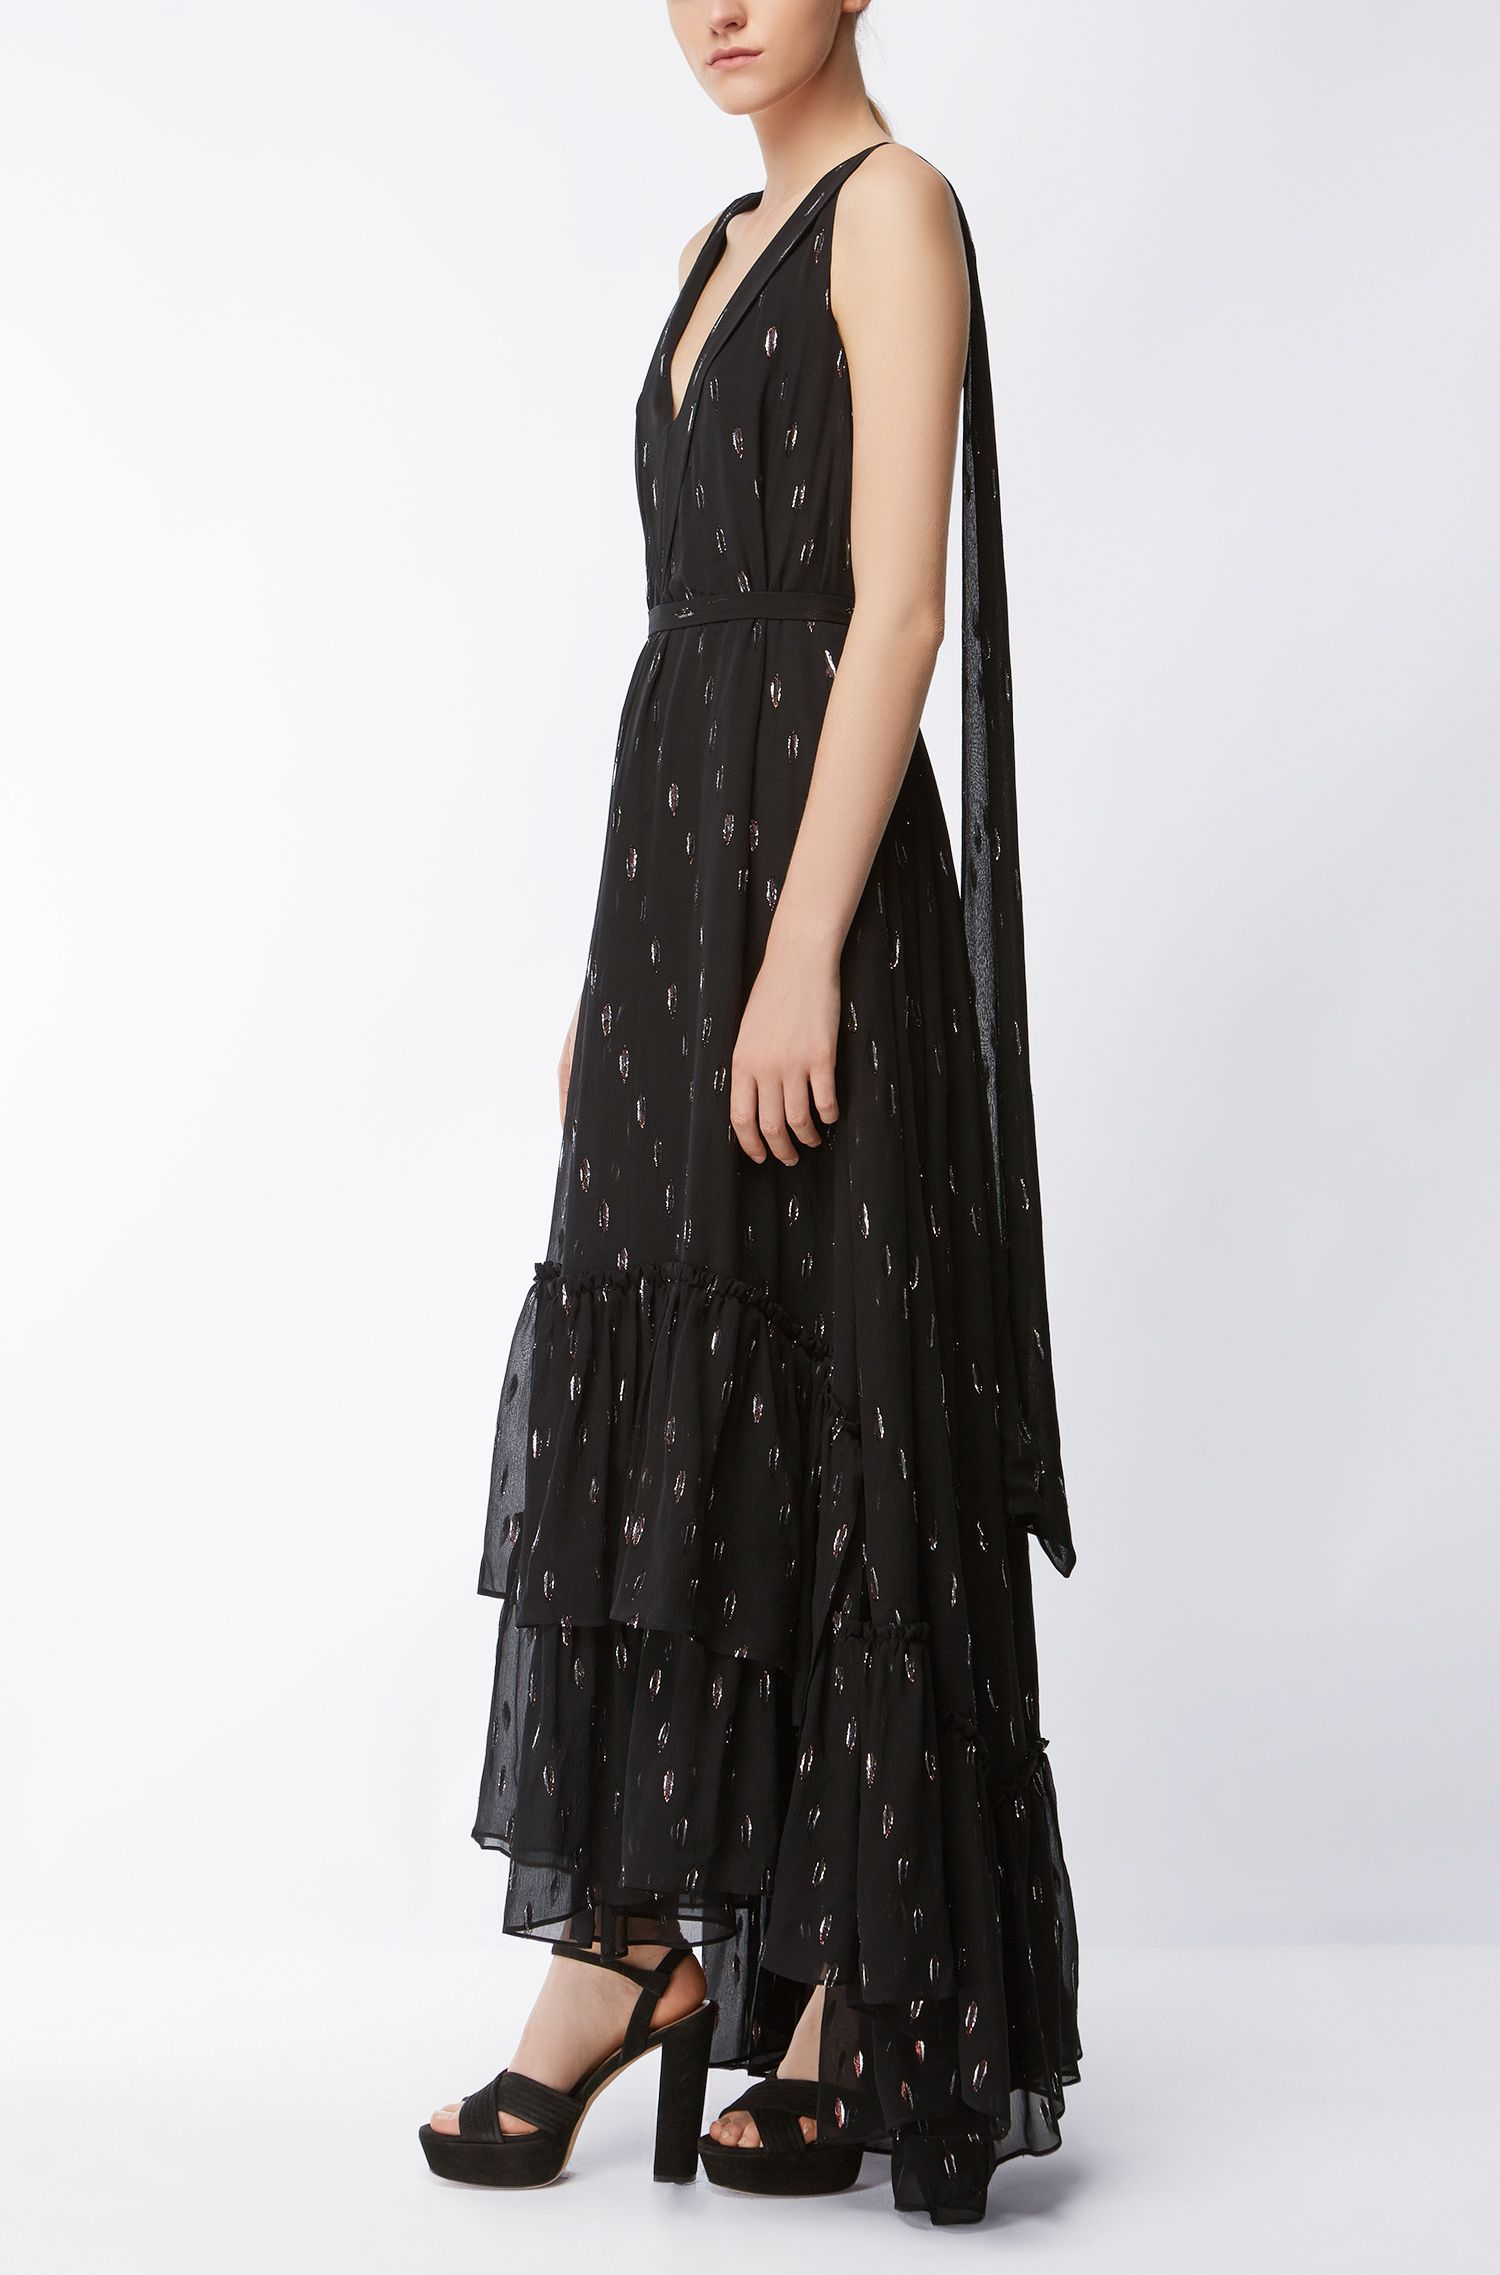 Metallized Silk Dress | Davimea, Patterned